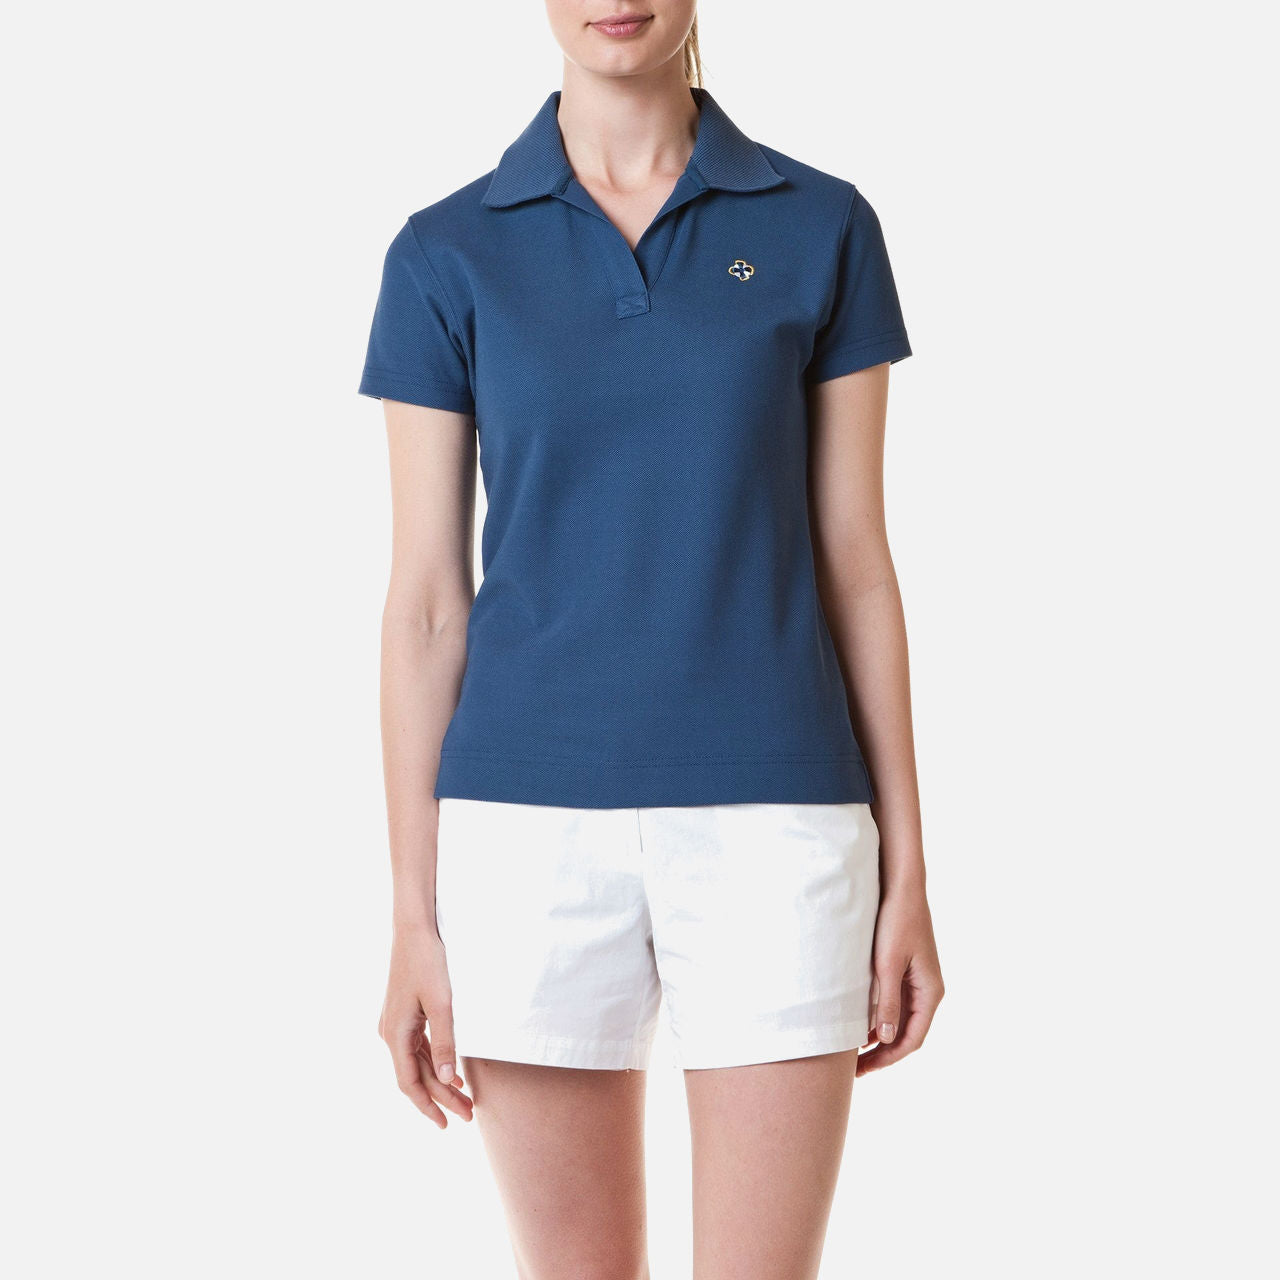 Castaway Islander V-Neck Polo - Nantucket Navy